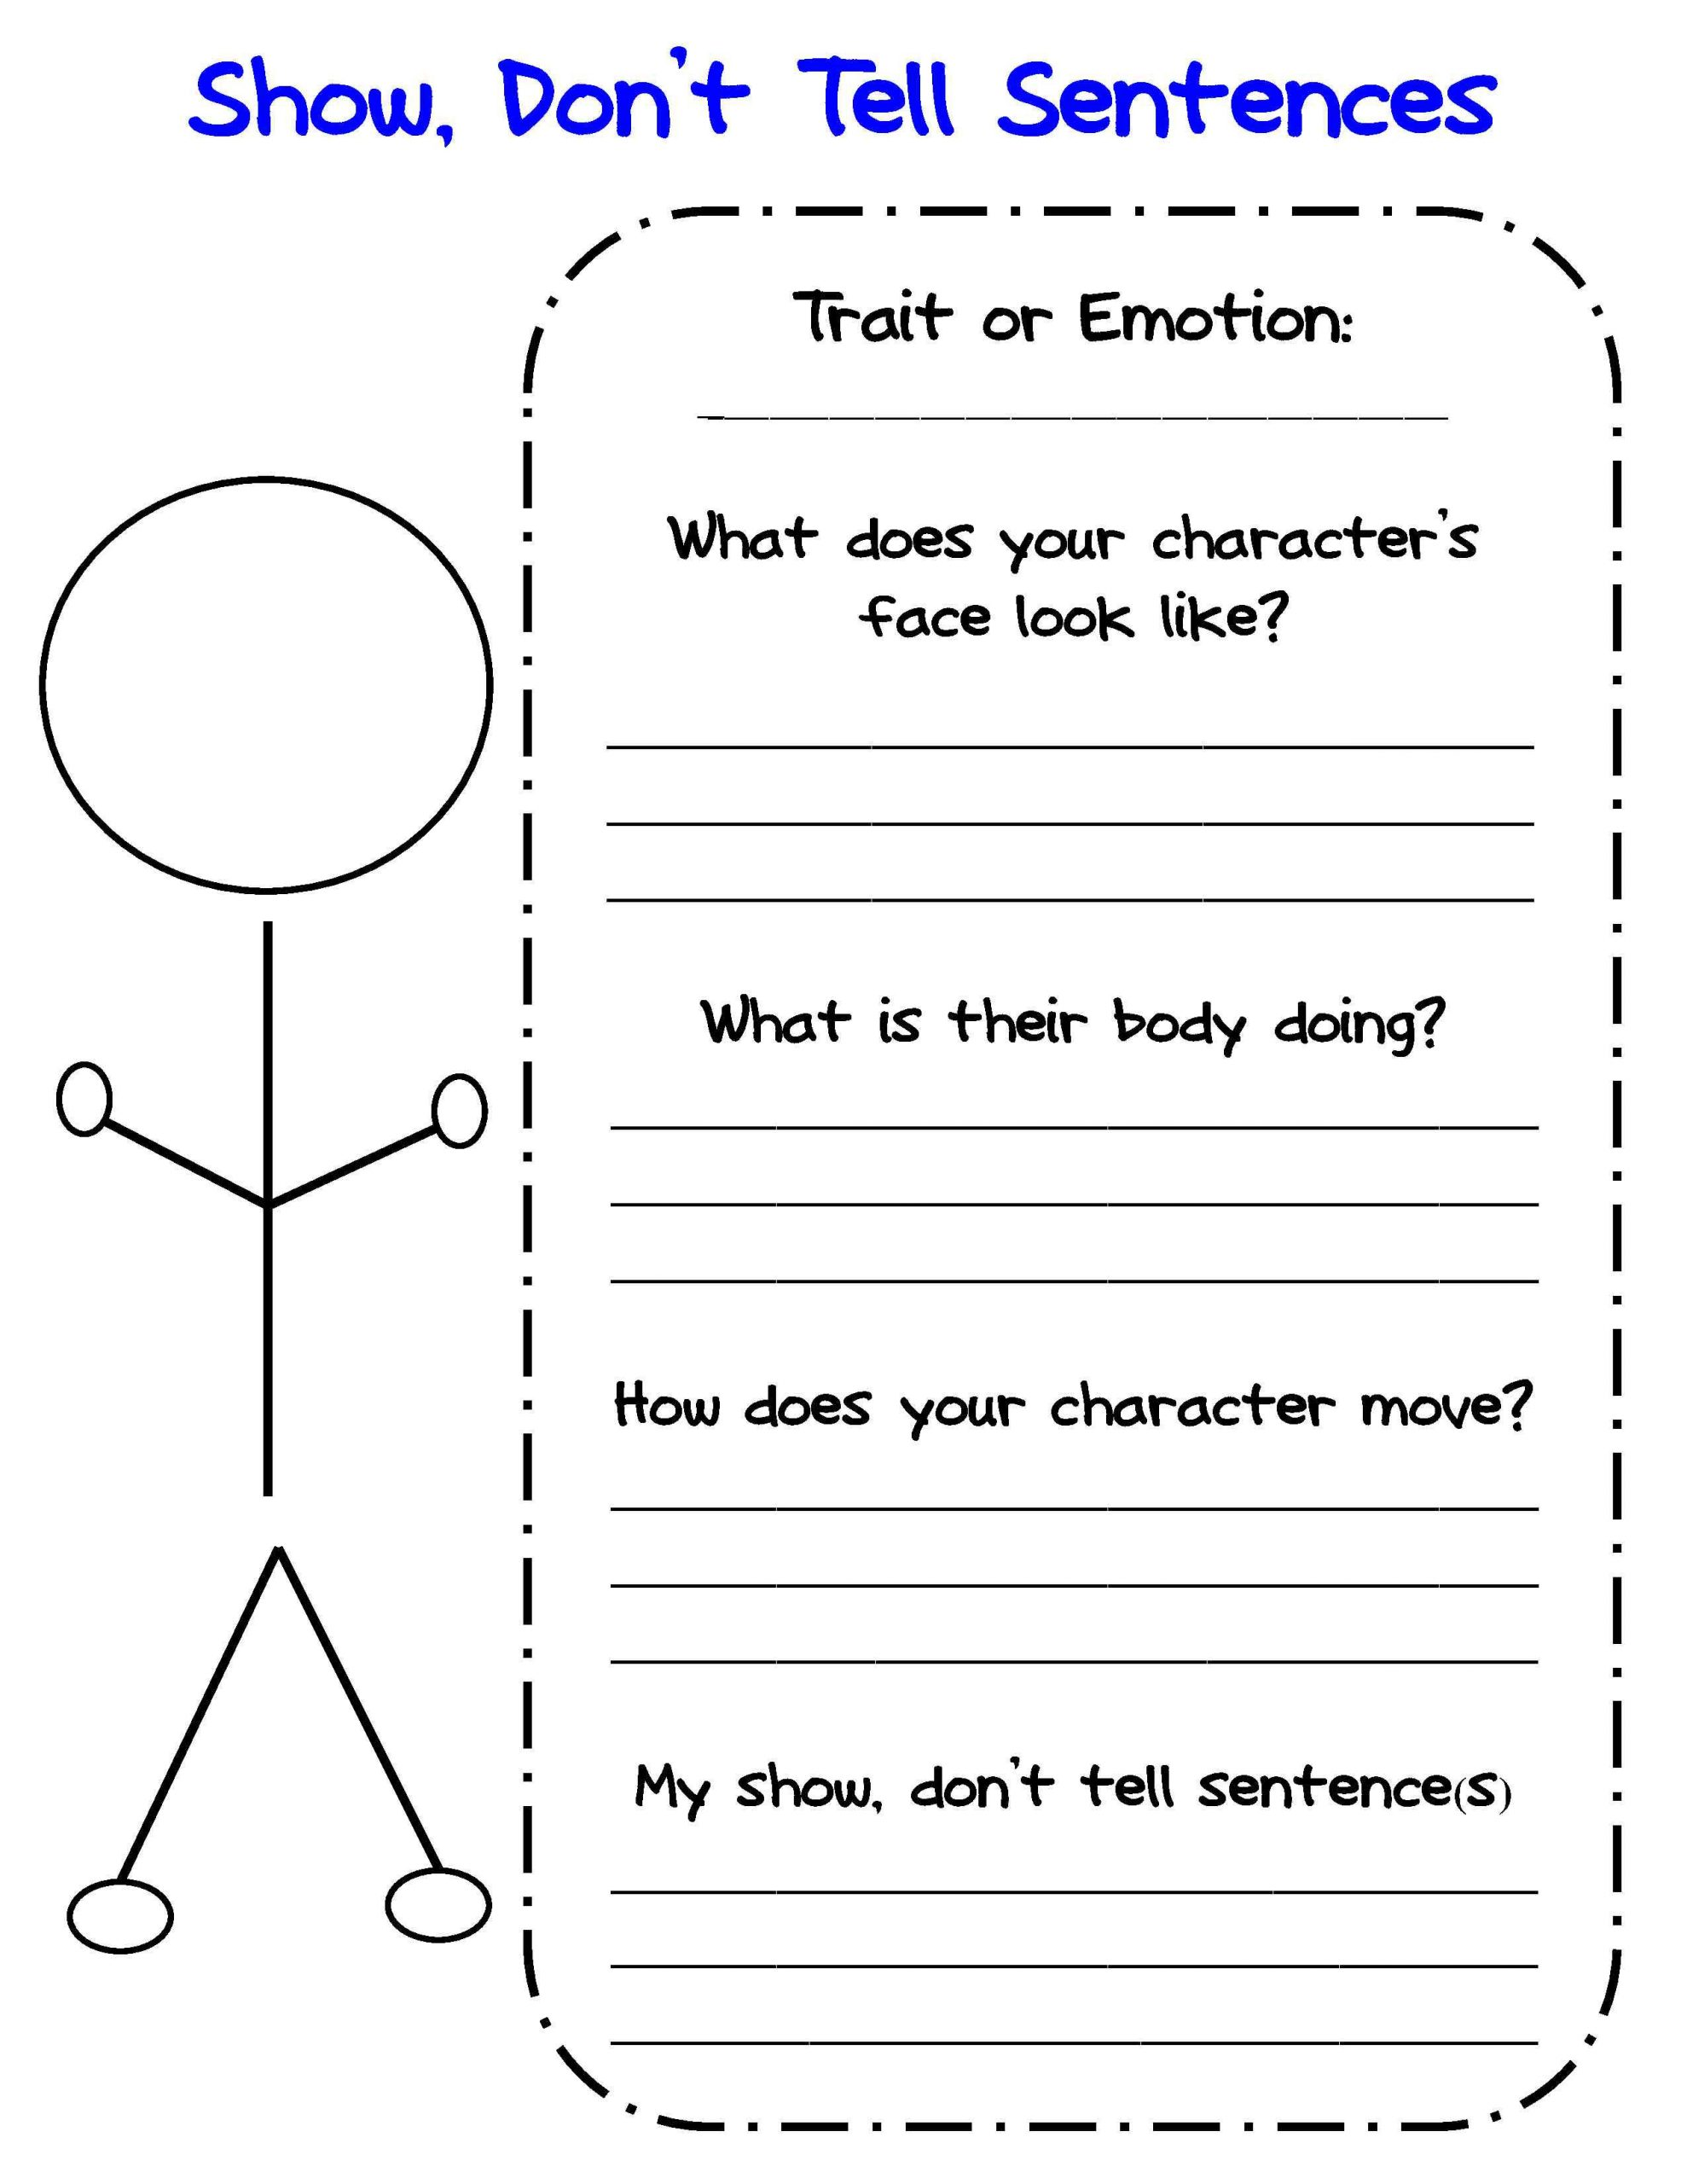 4th Grade Essay Writing Worksheets Graphic organizers for Personal Narratives